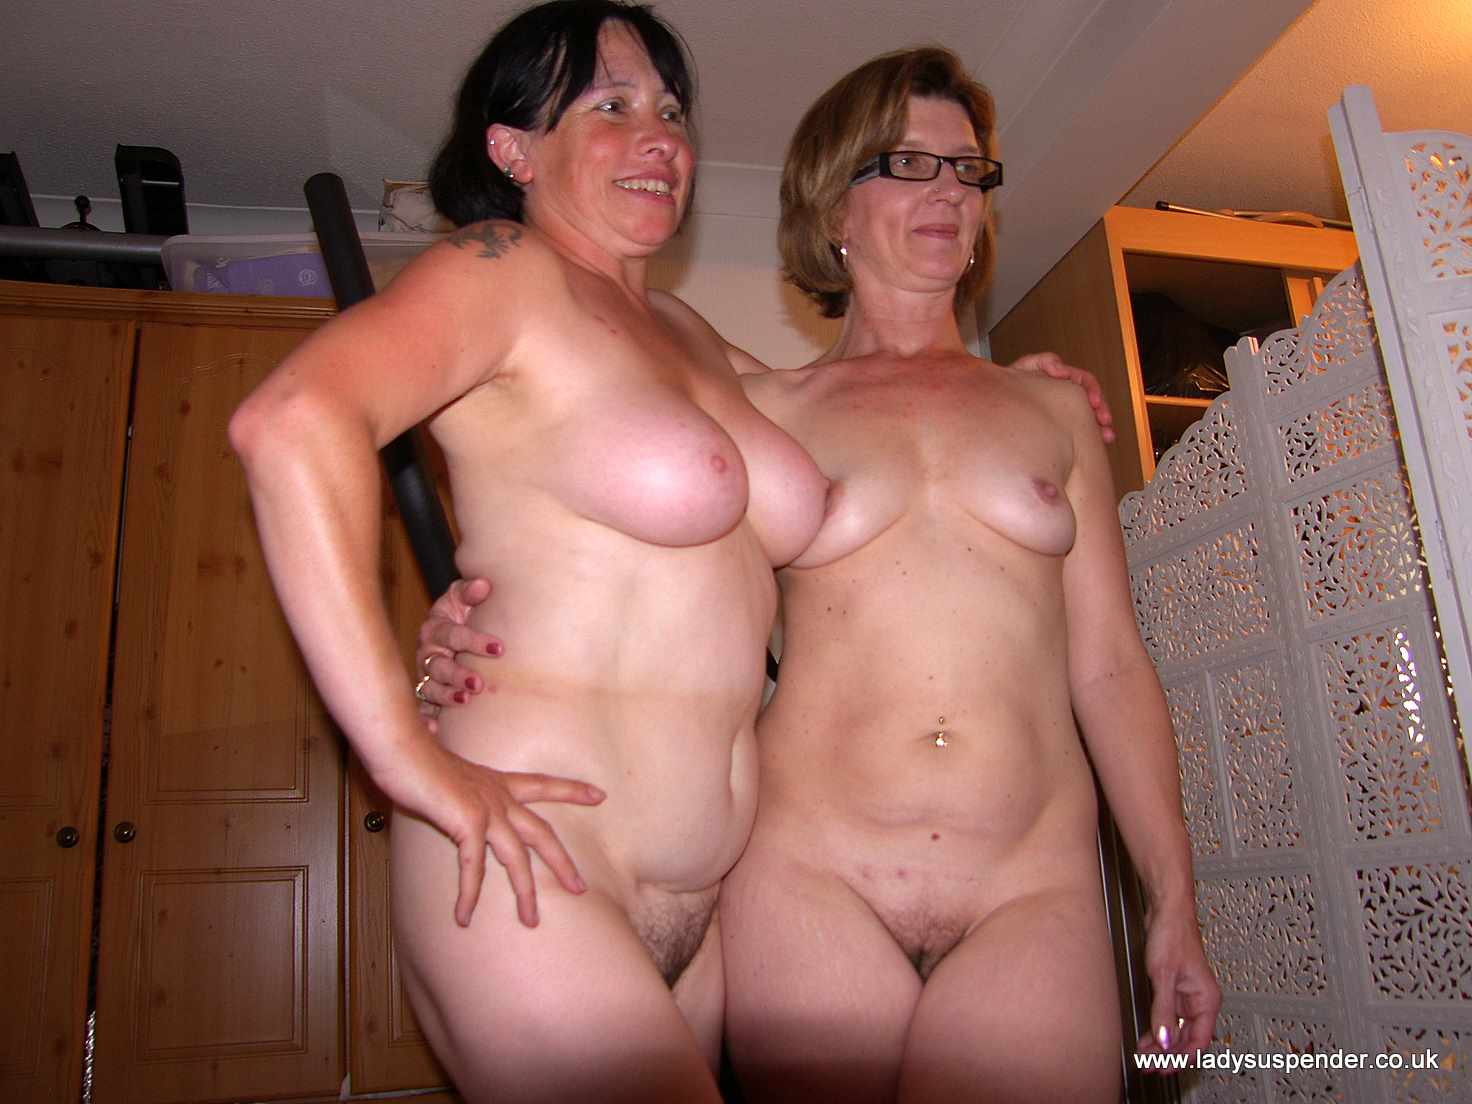 Oops caught mom naked